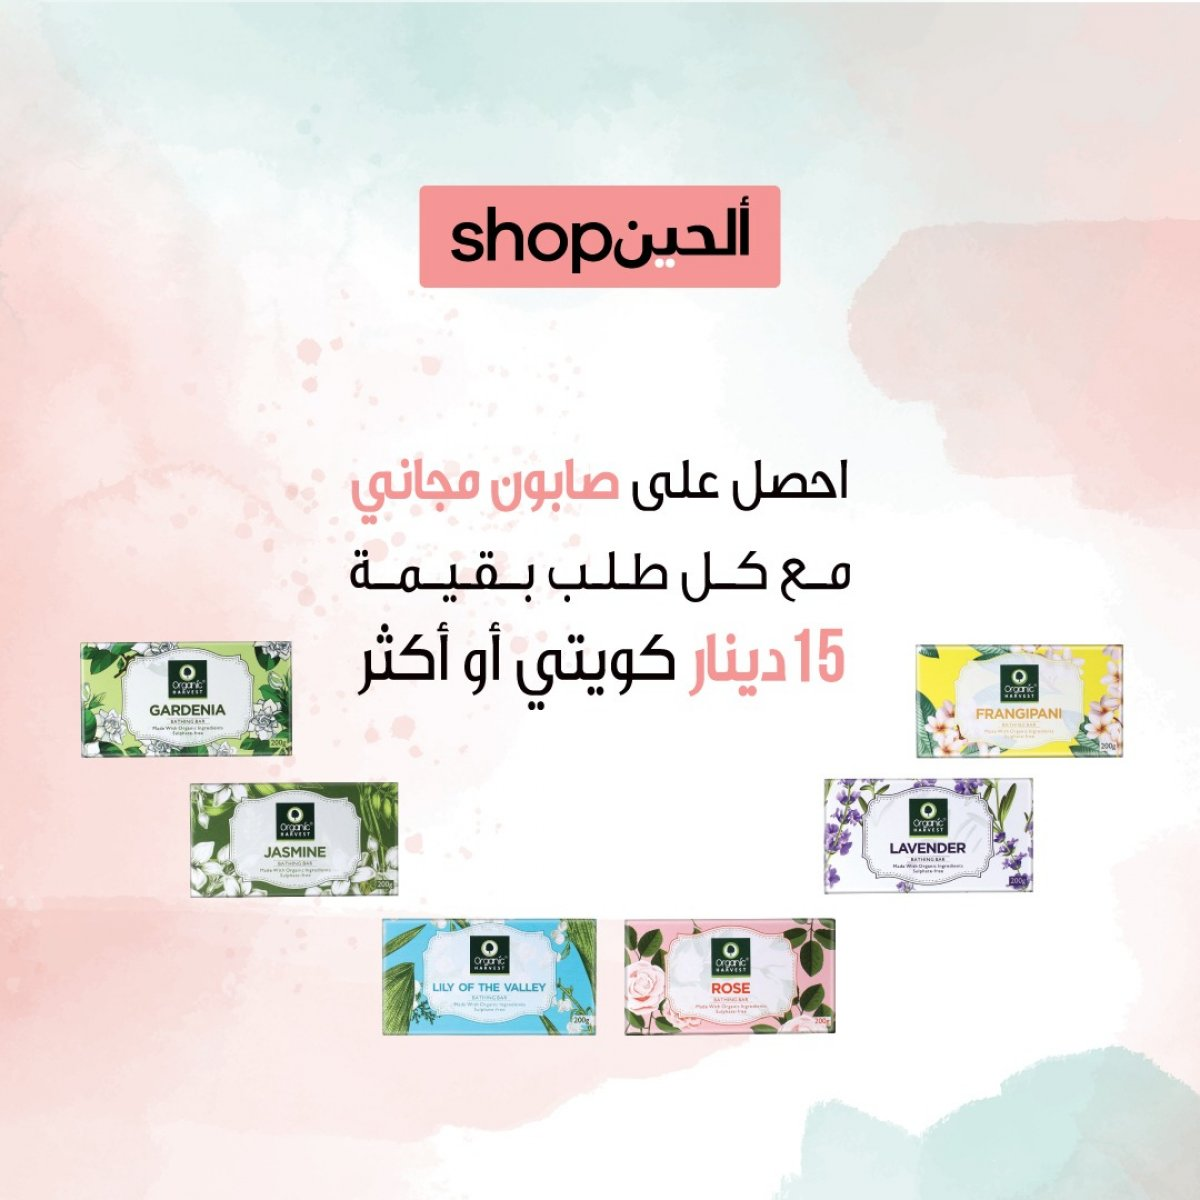 Shopalheen - Organic Cosmetic Products